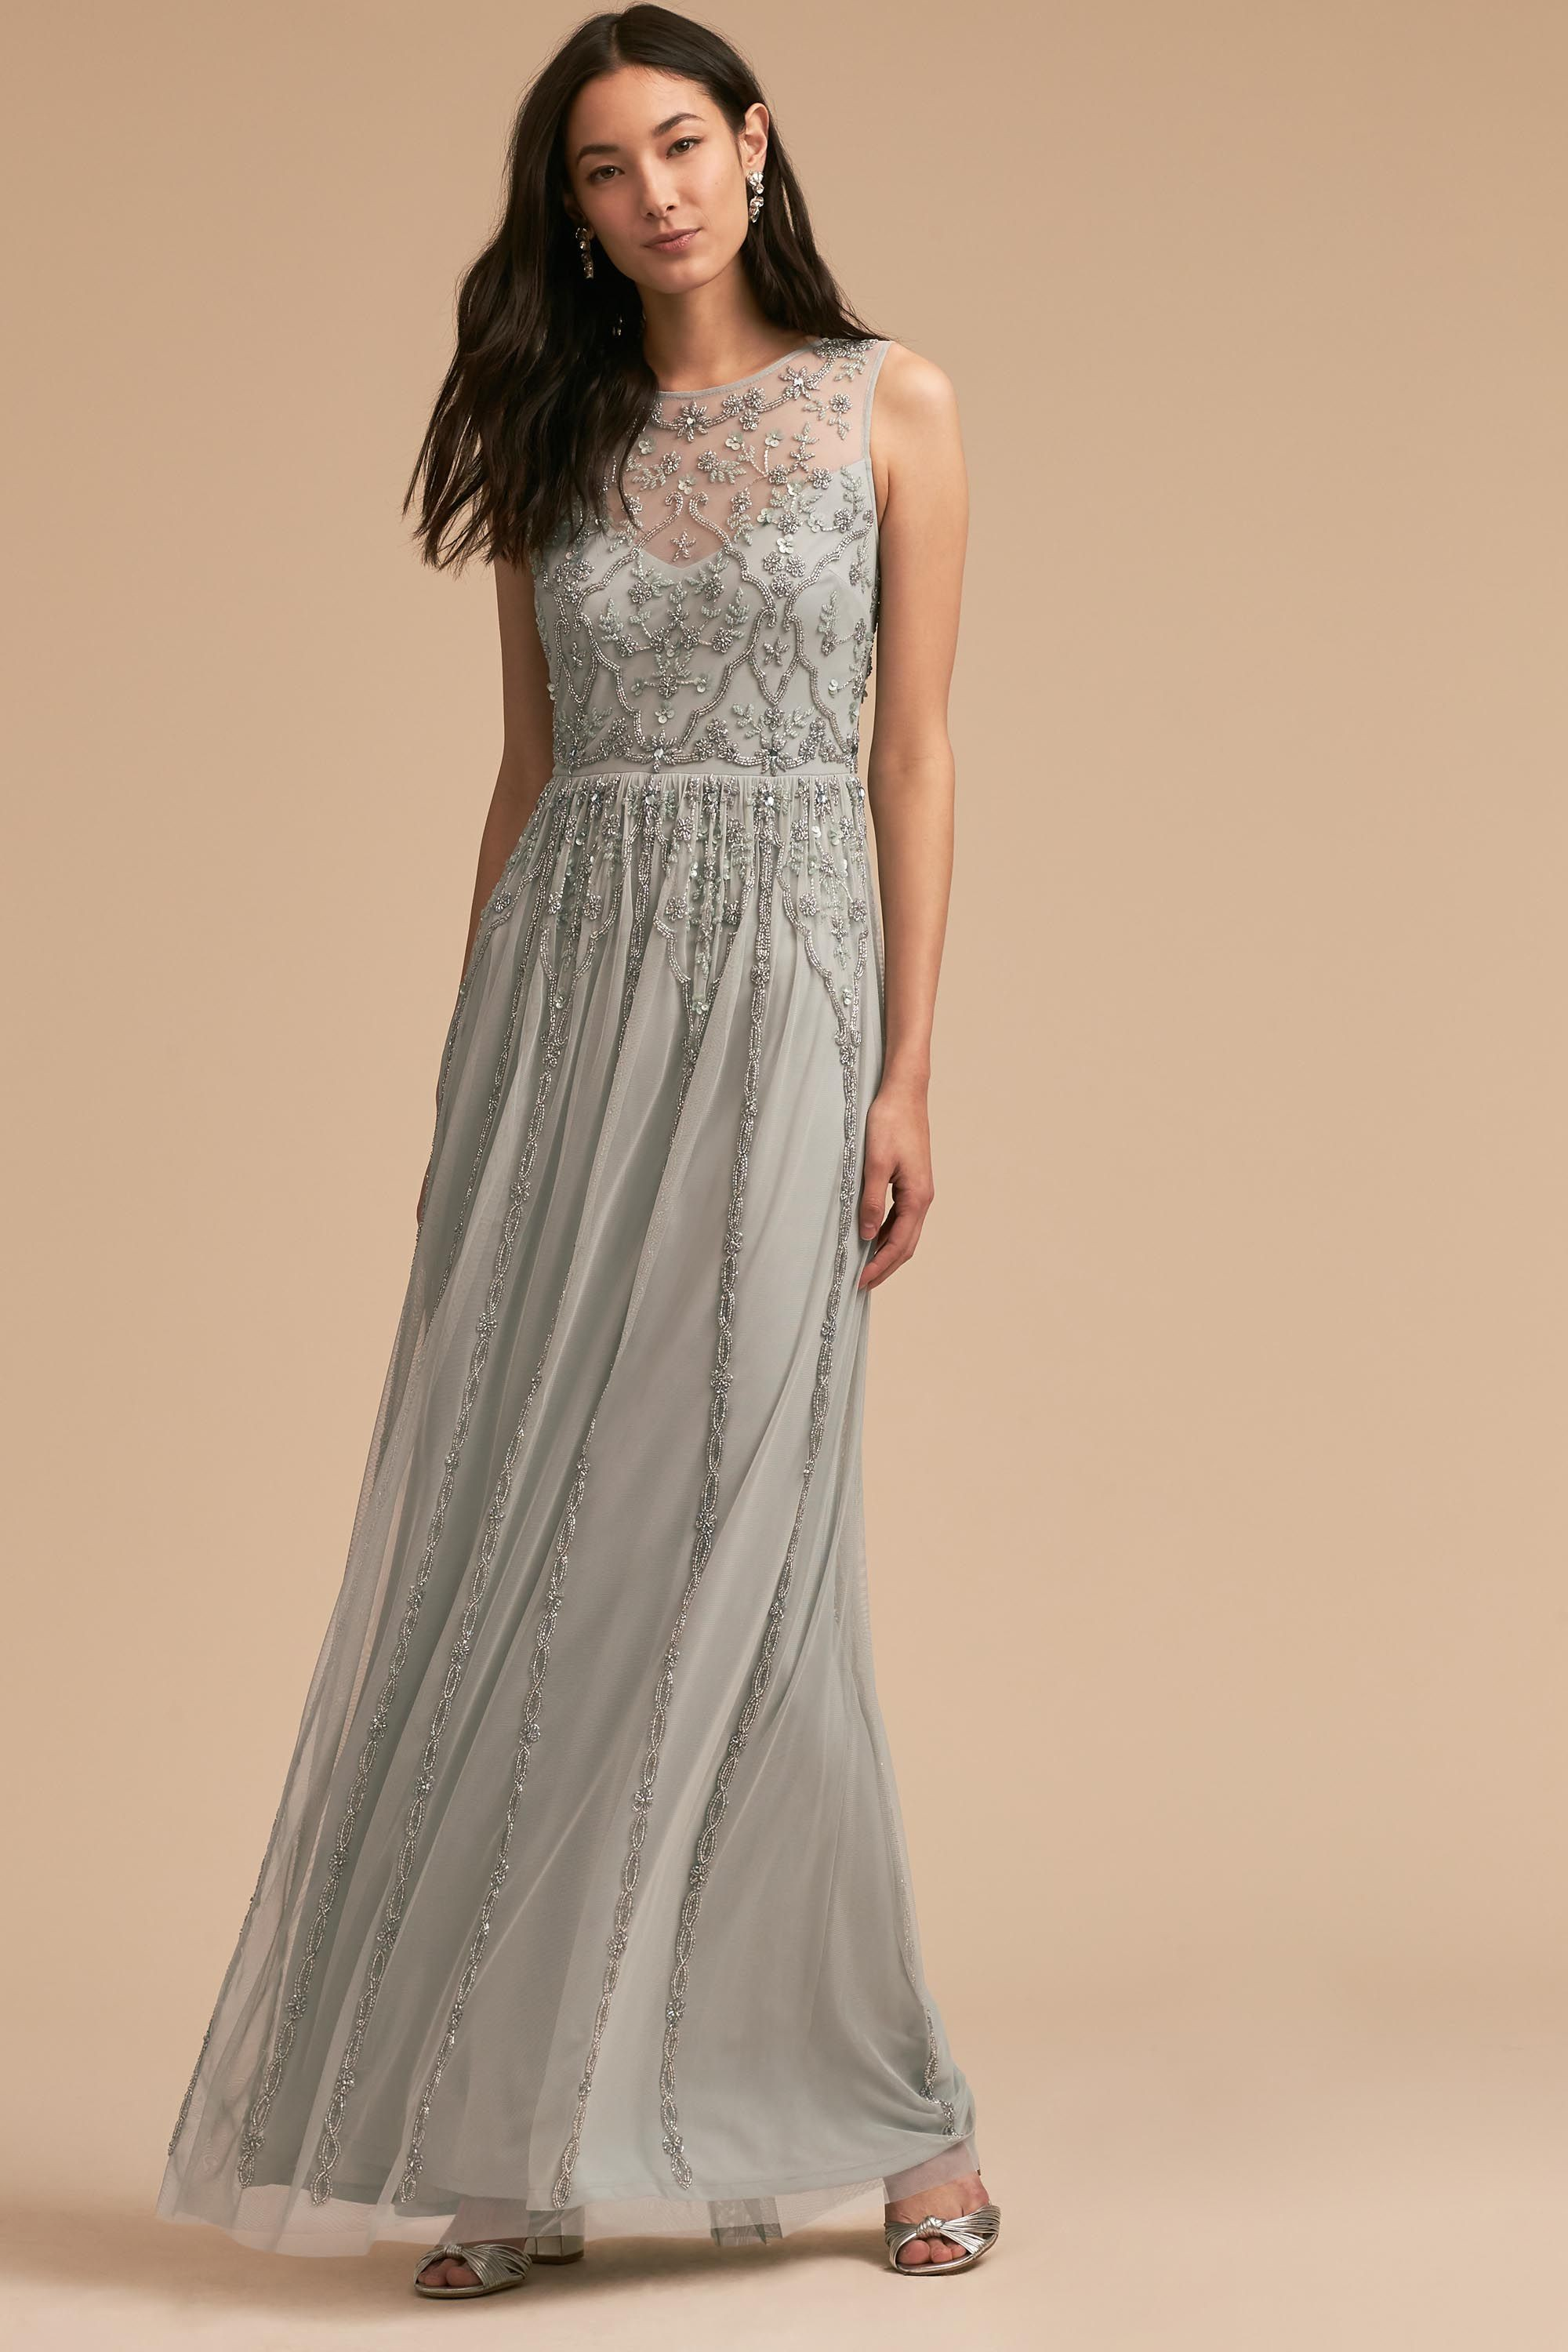 10 bridesmaids dresses youd want to wear again wedding estates bhldn 28000 ombrellifo Gallery